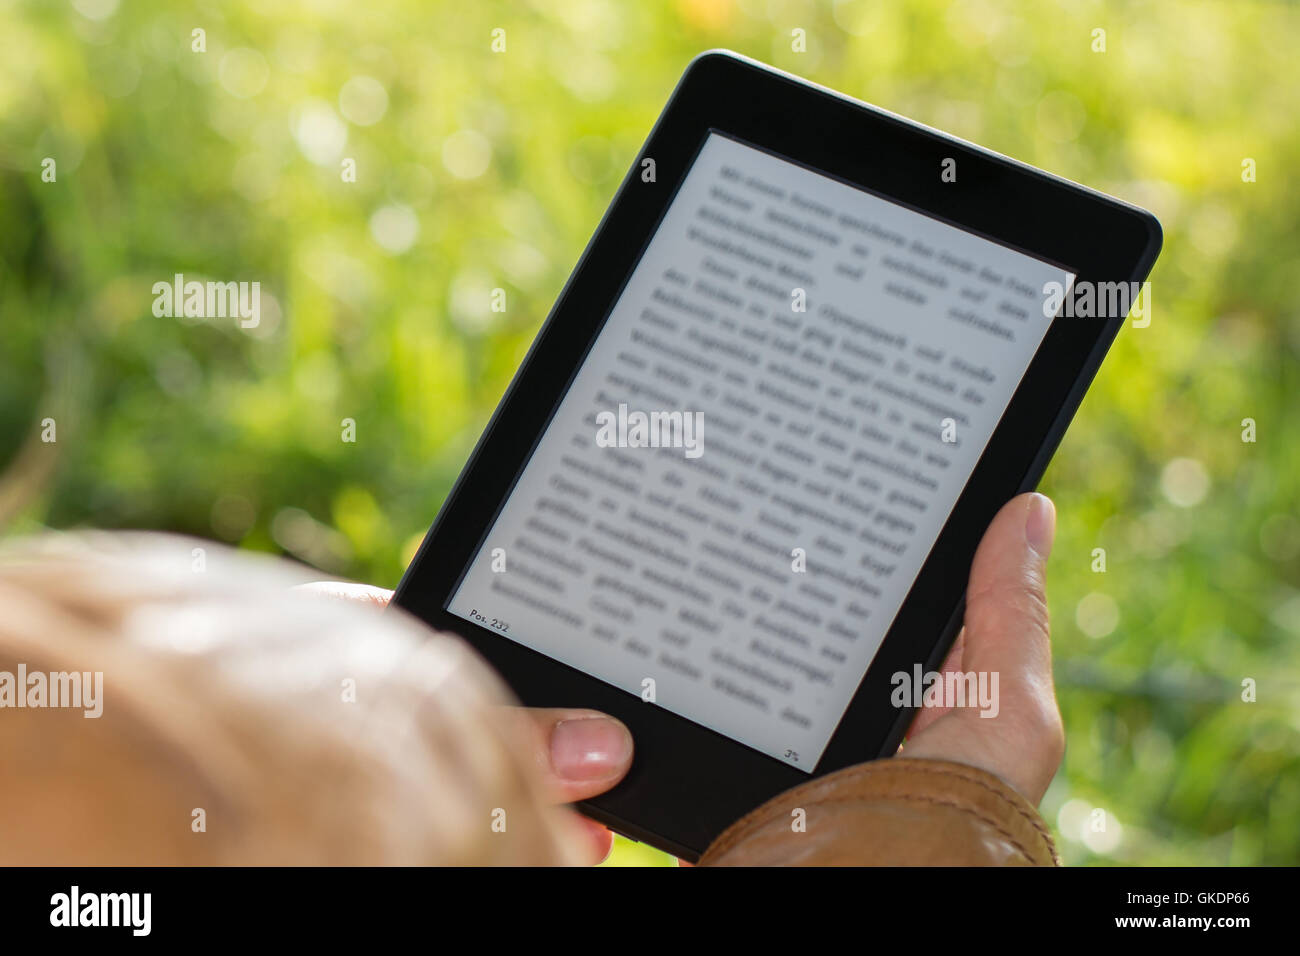 ebook reader outdoors in park - Stock Image